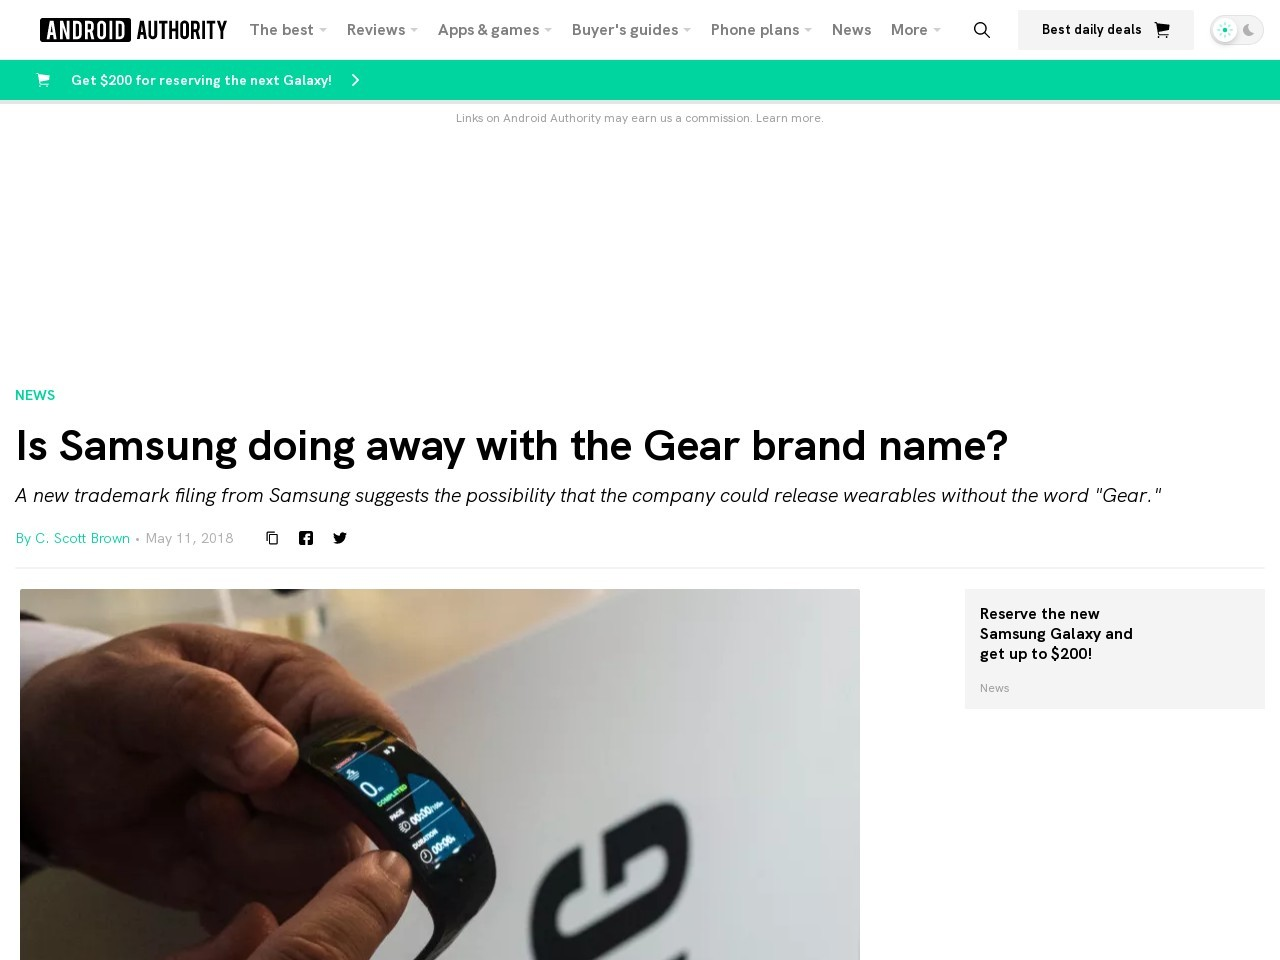 Samsung trademarks new wearables without the word Gear